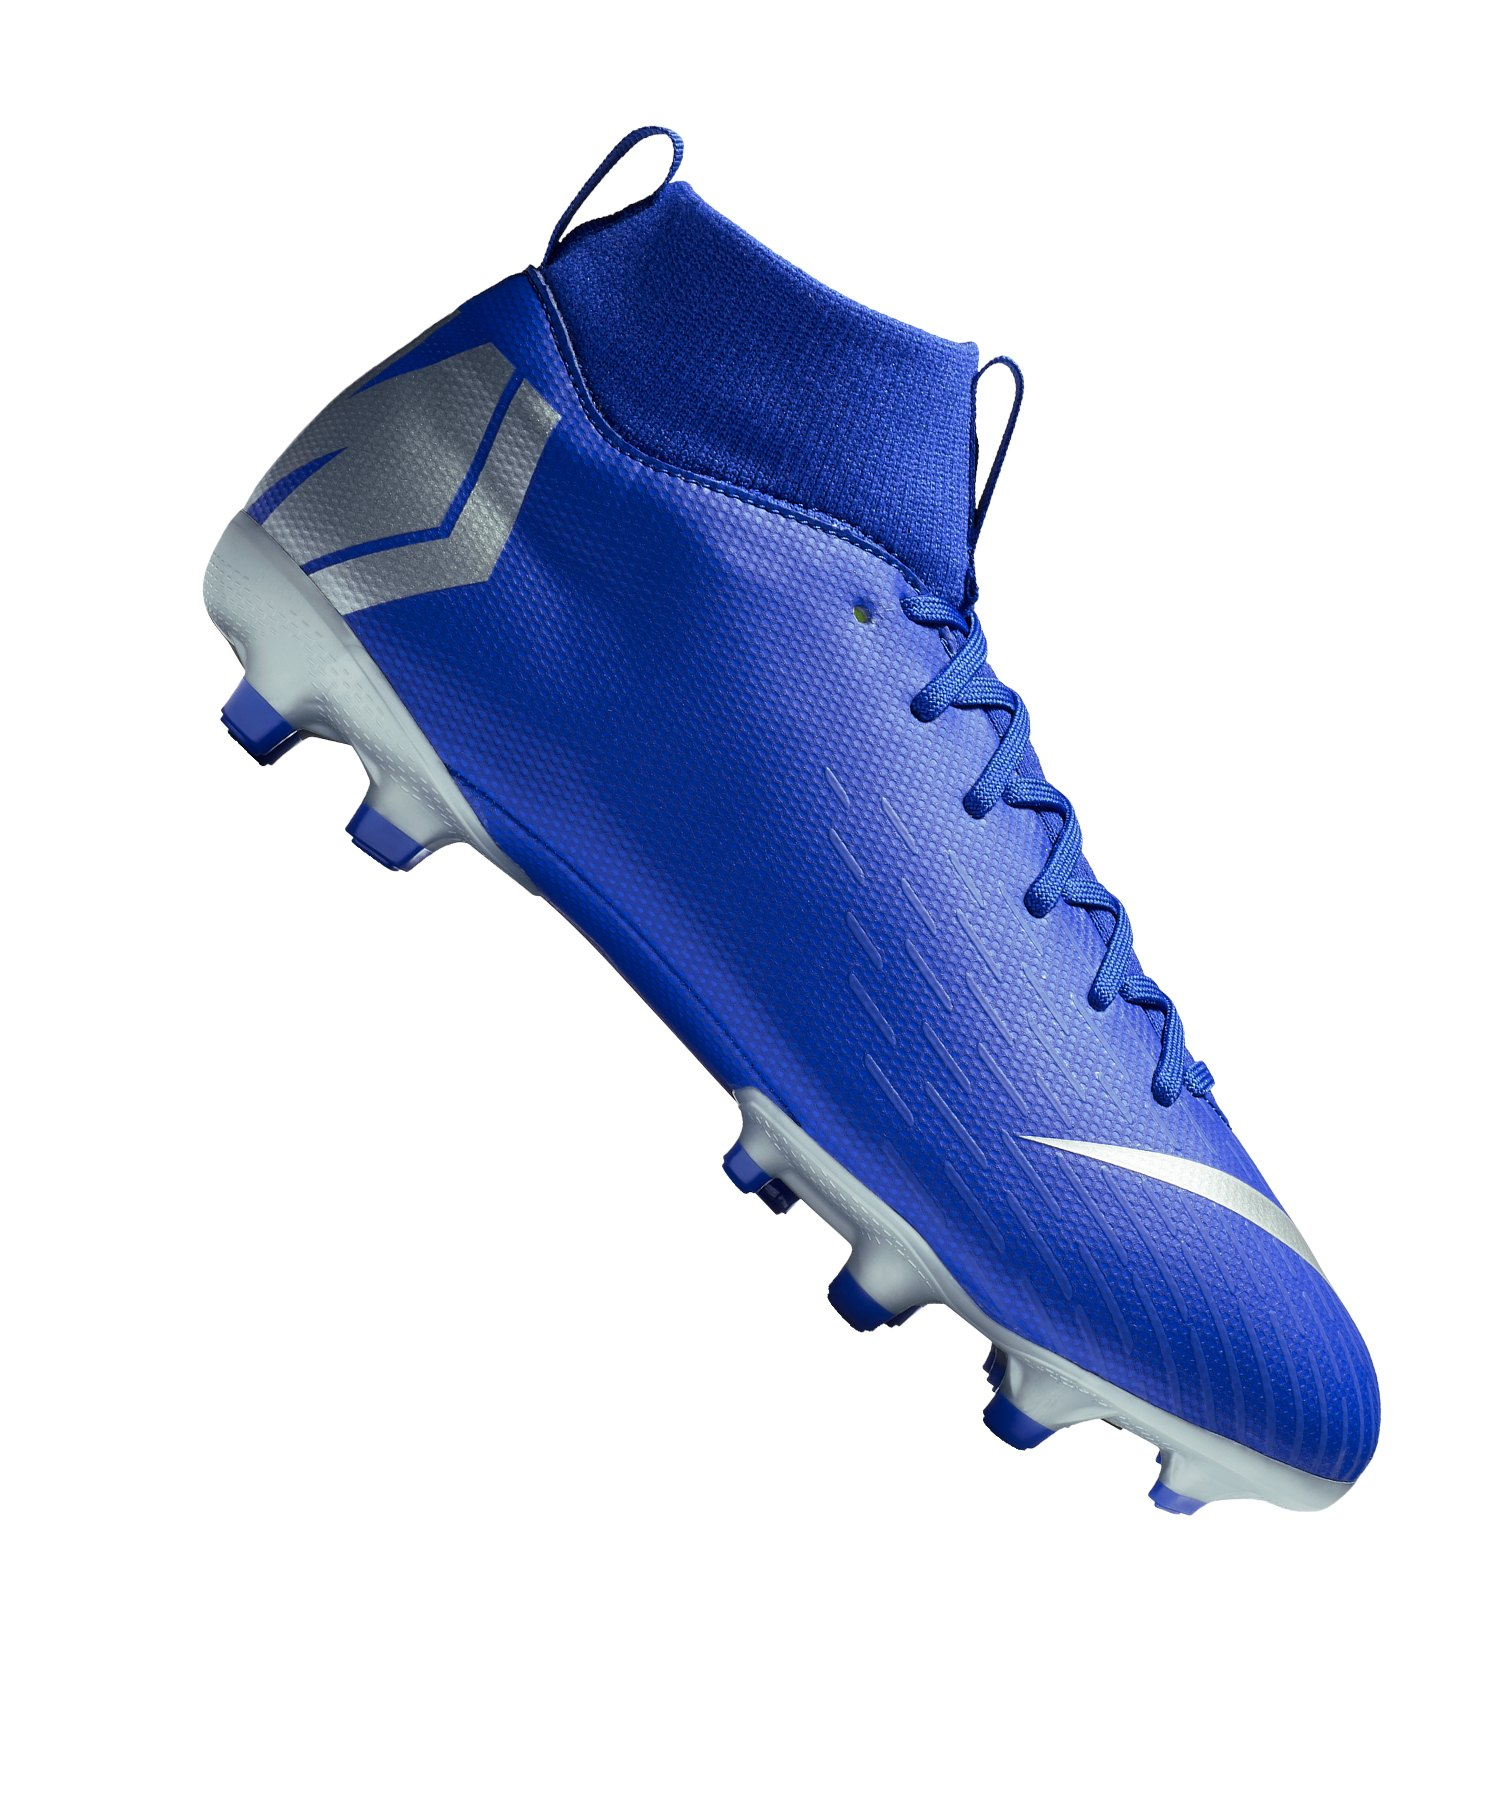 premium selection 9c96e 102fd Nike Mercurial Superfly VI Academy MG GS Kids F400 - blau